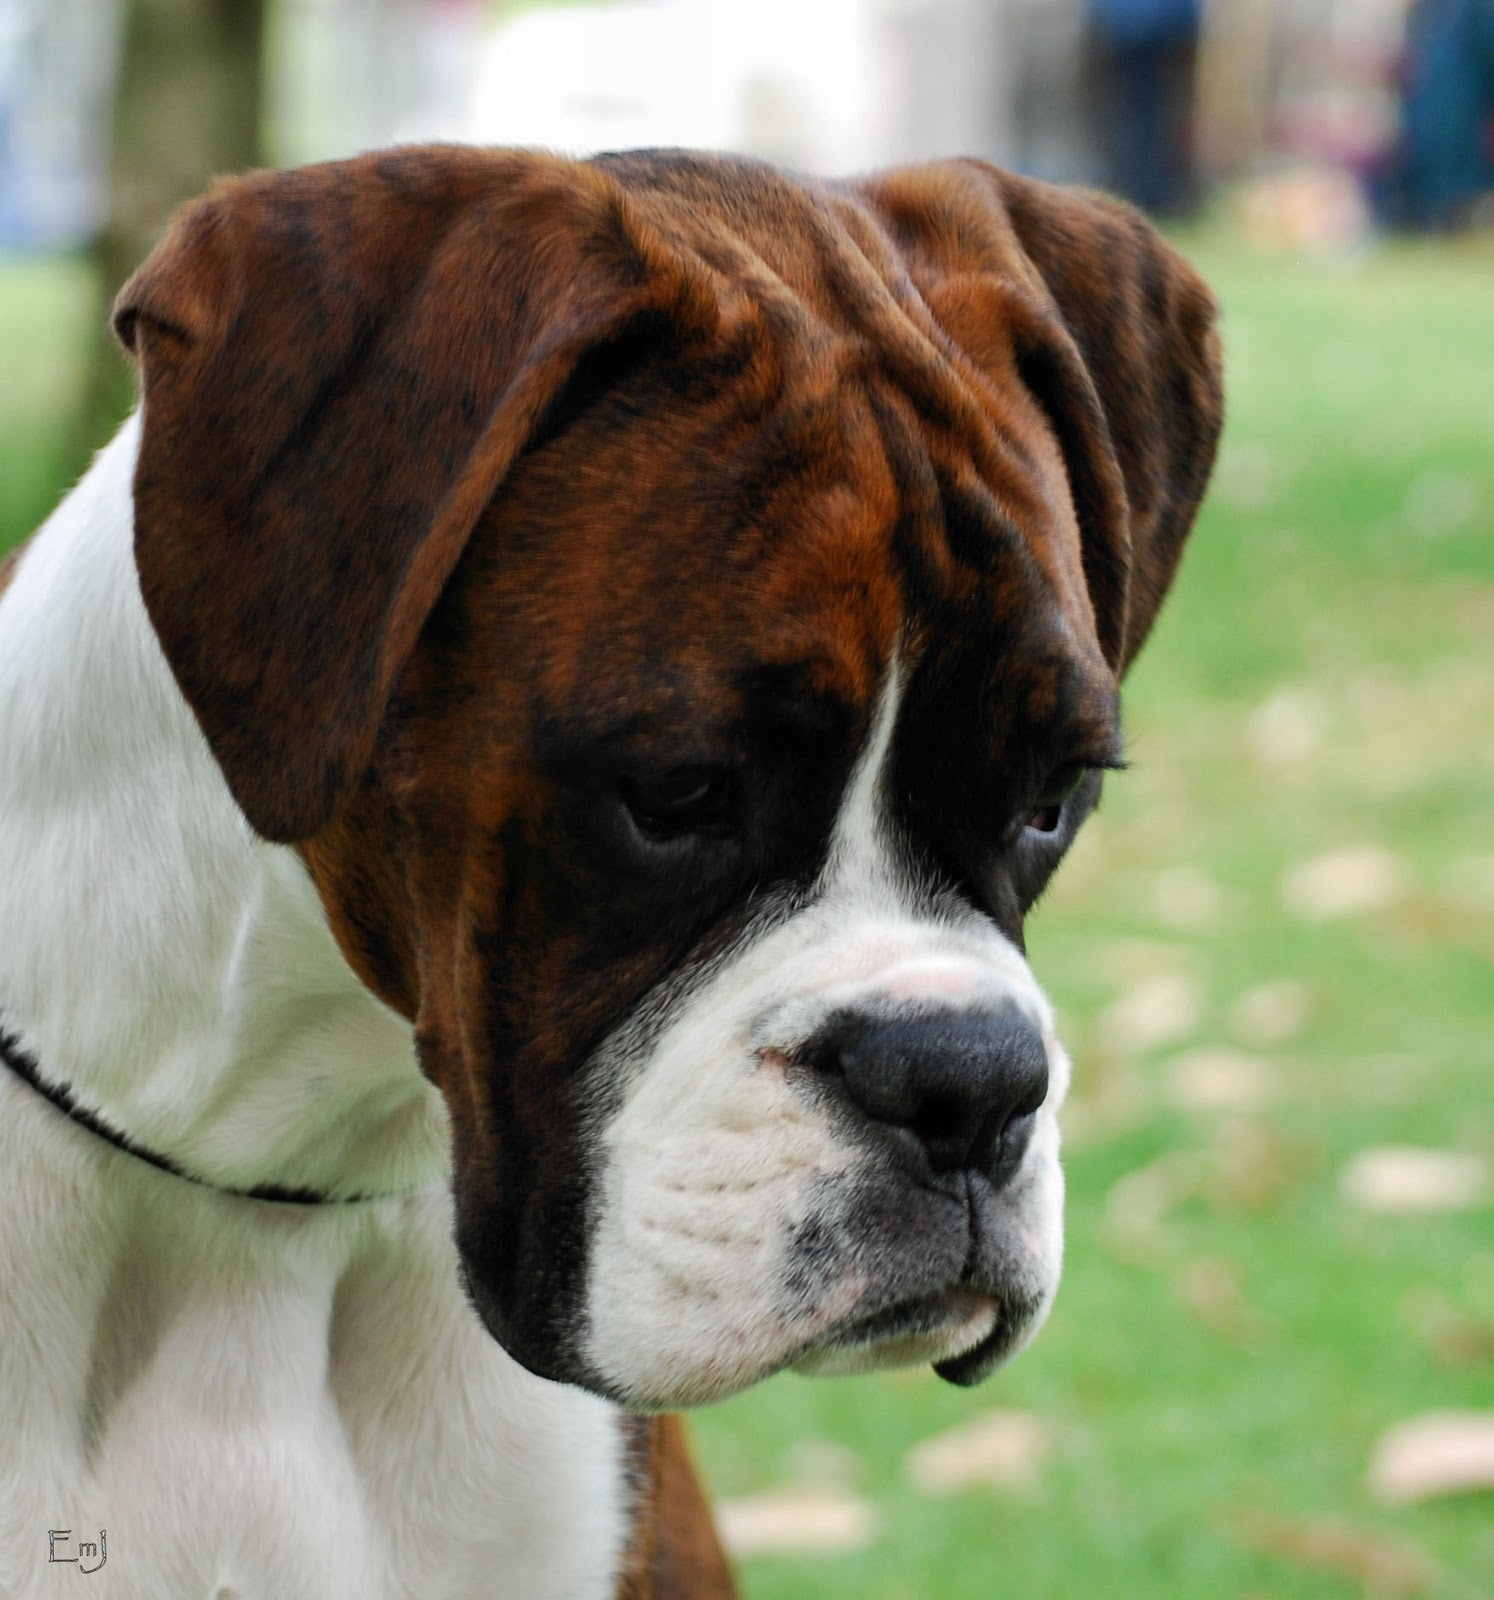 The Dog Hd Wallpapers: Sad Boxer Dog Hd Wallpaper